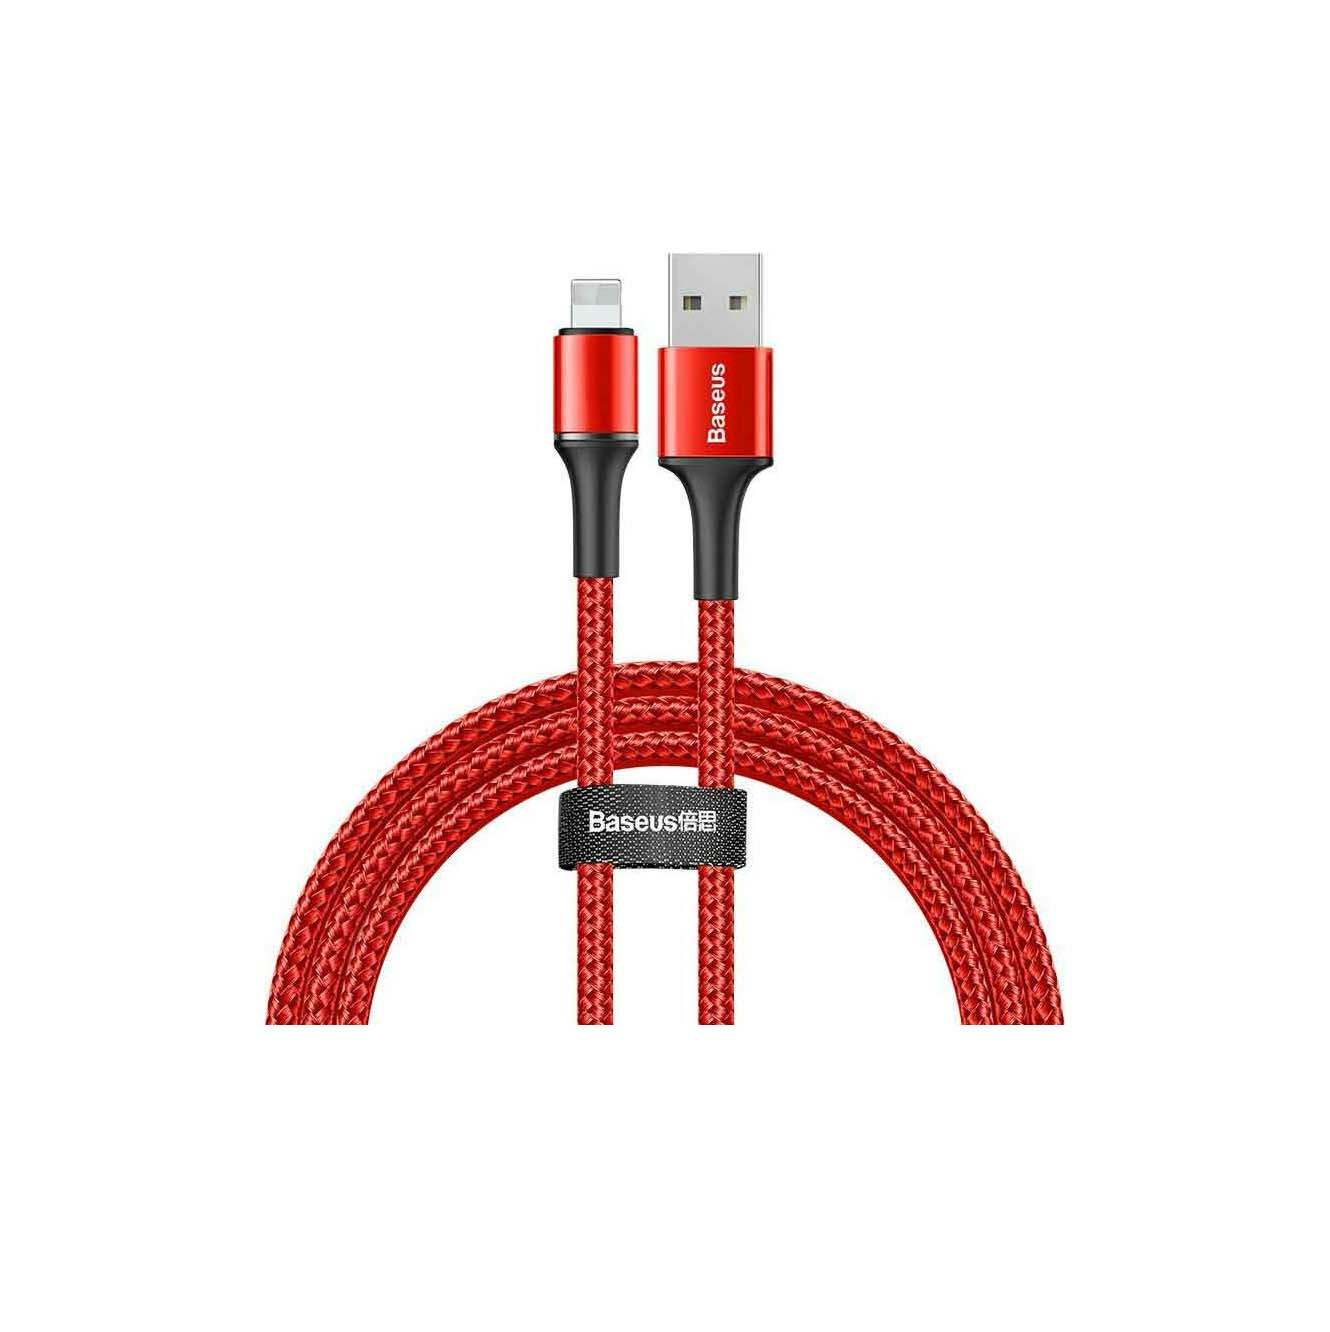 Baseus USB Cable Halo Data CALGH-B09 iPhone Lightning 1M 2.4A Red